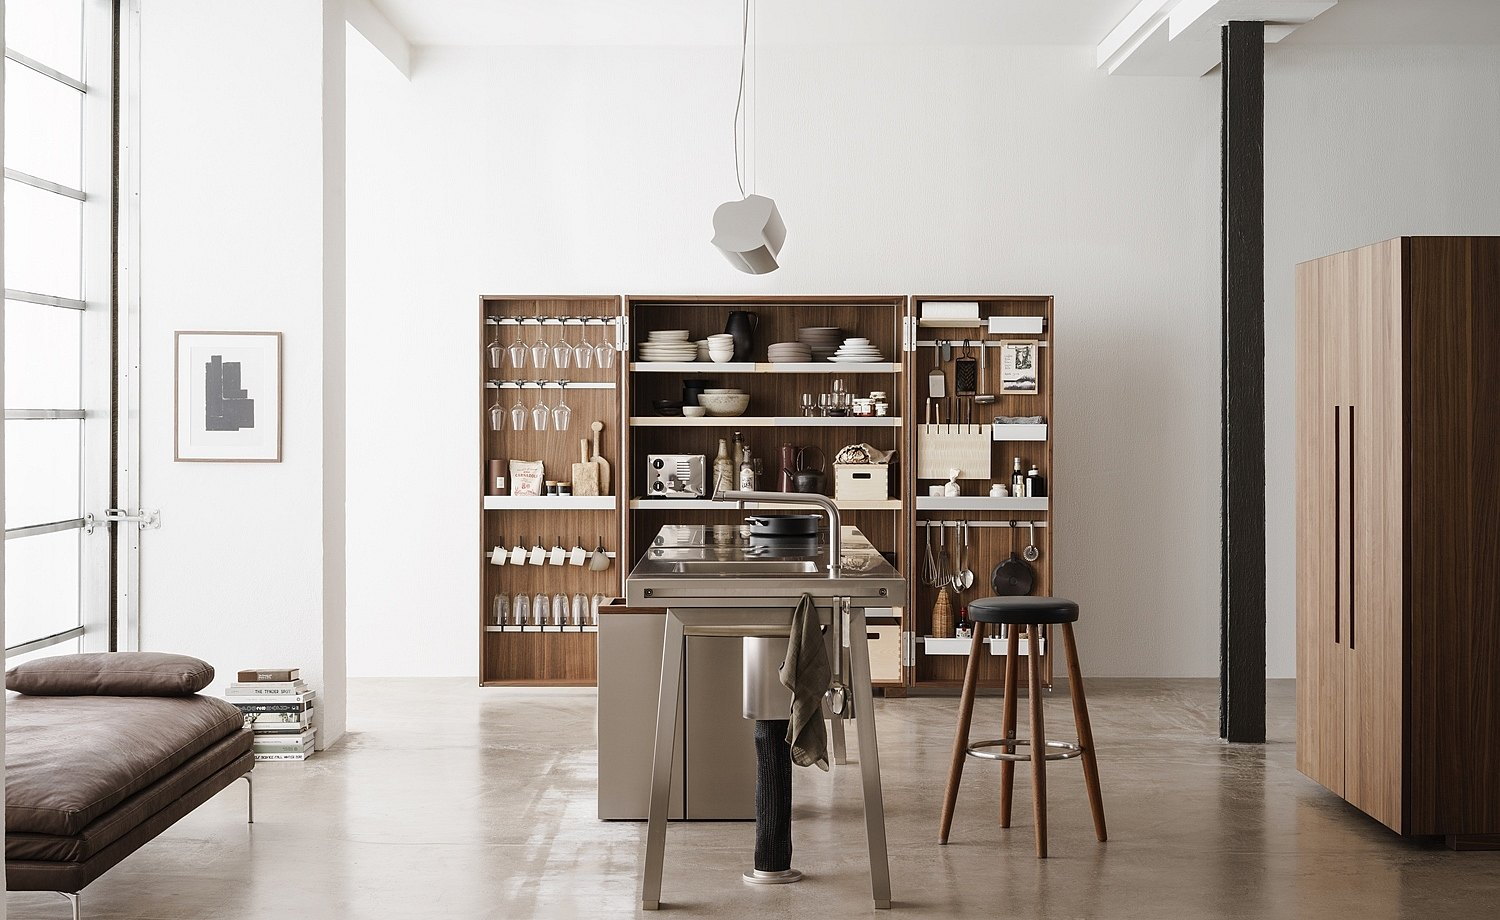 The three elements of the kitchen workshop create a focus on the essentials and plenty of freedom of movement